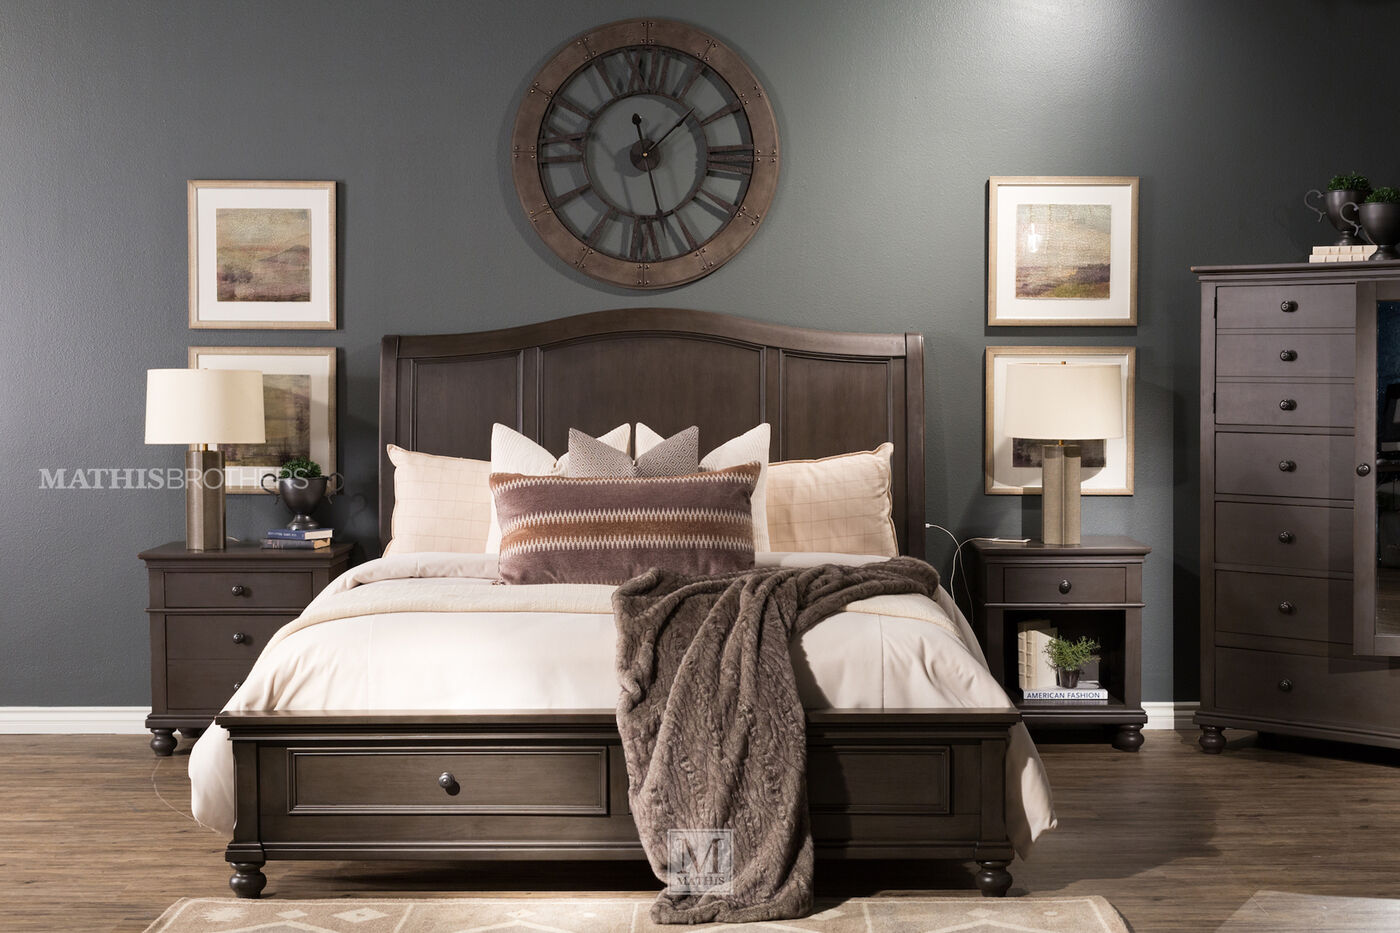 design edington sets king lawrence suite bedroom stylish mathis brothers modest samuel